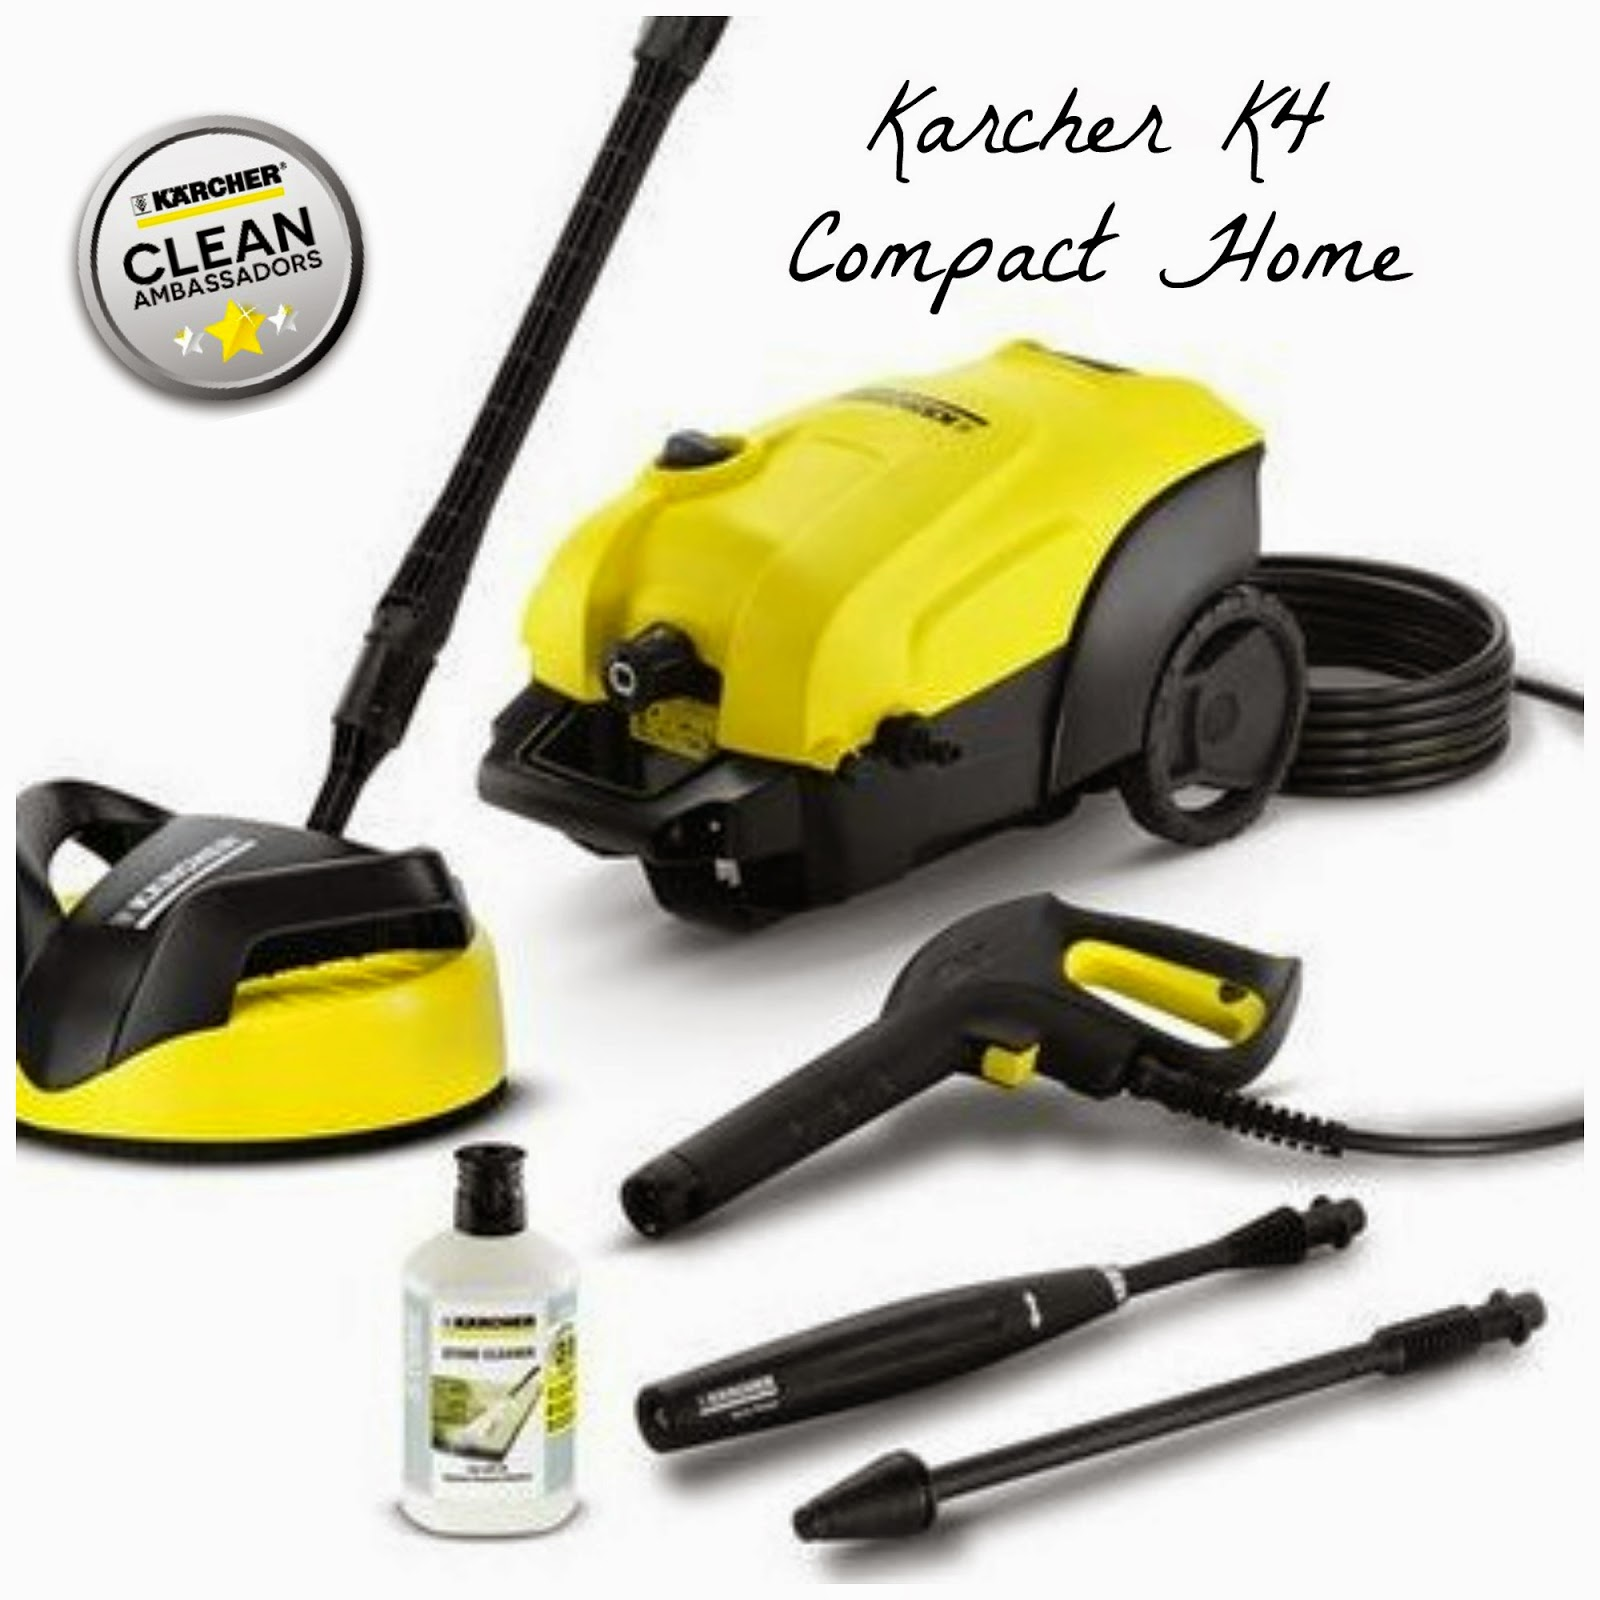 emmys mummy karcher k4 compact home review. Black Bedroom Furniture Sets. Home Design Ideas